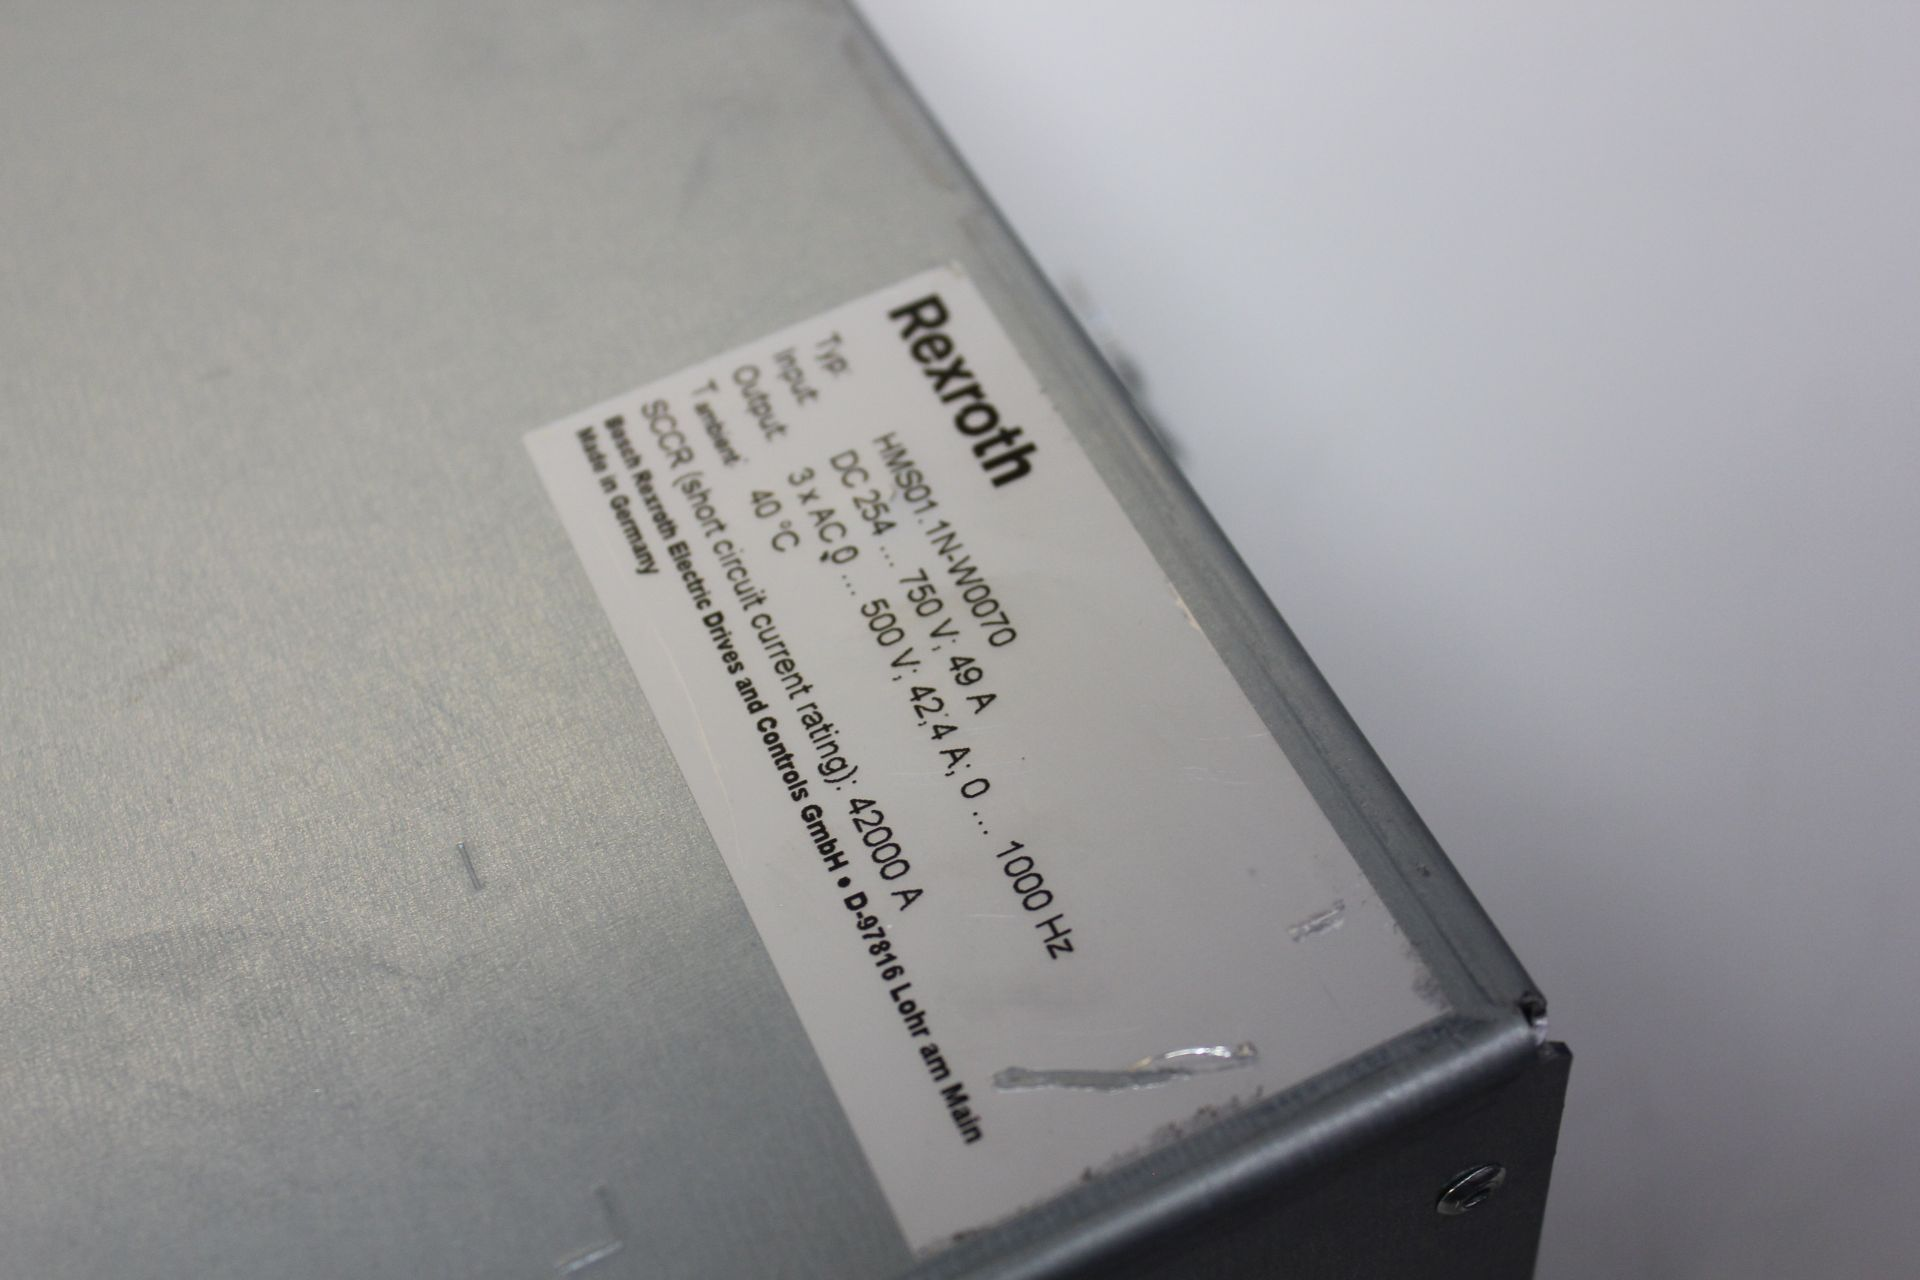 Lot 184 - REXROTH INDRADRIVE M SINGLE AXIS INVERTER WITH SERCOS MODULE